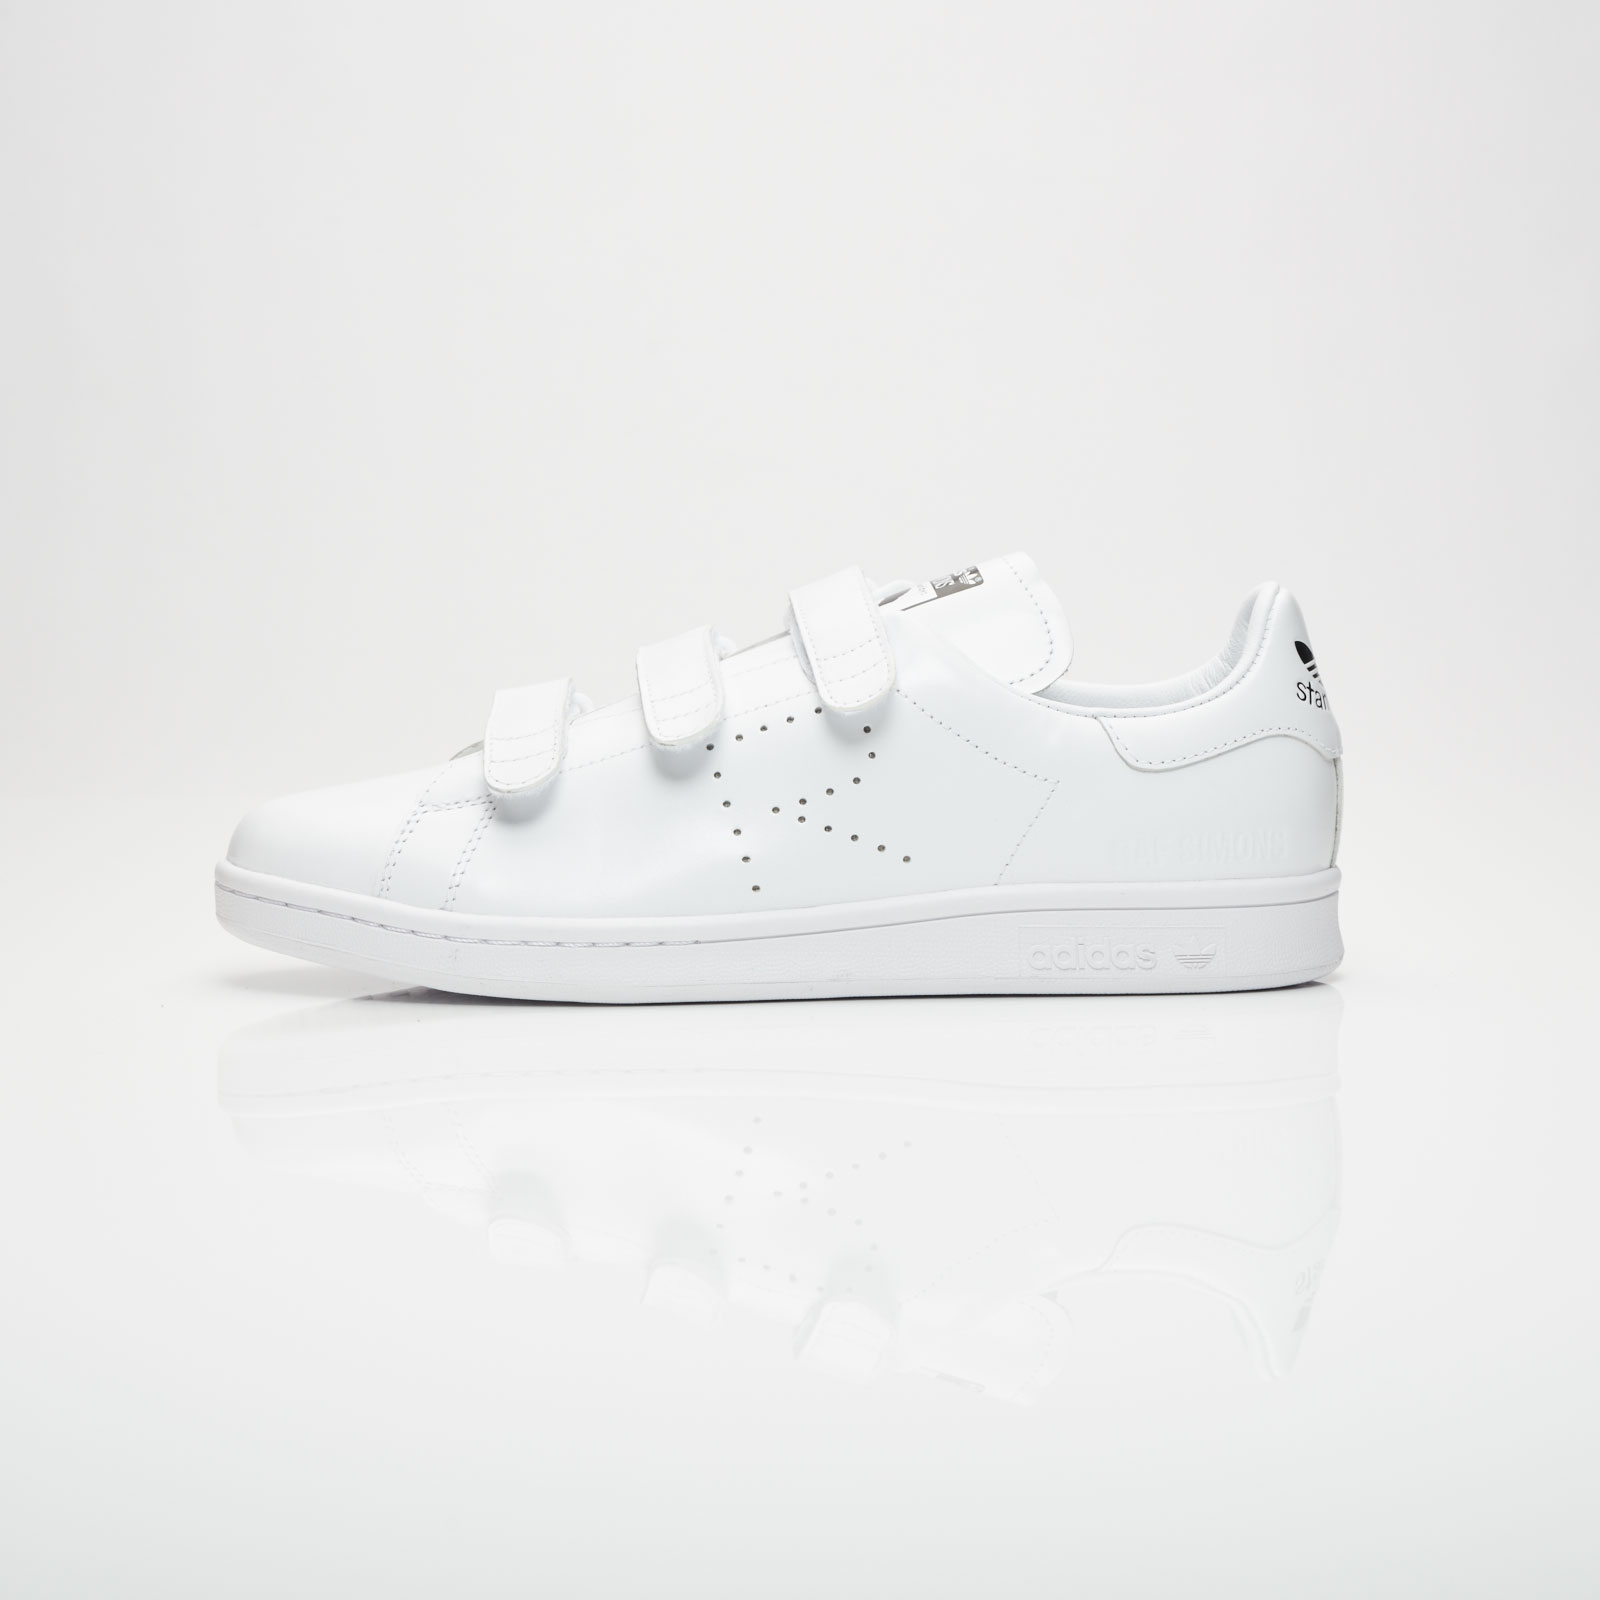 7078f8e3d65 adidas Stan Smith Comfort - S81170 - Sneakersnstuff